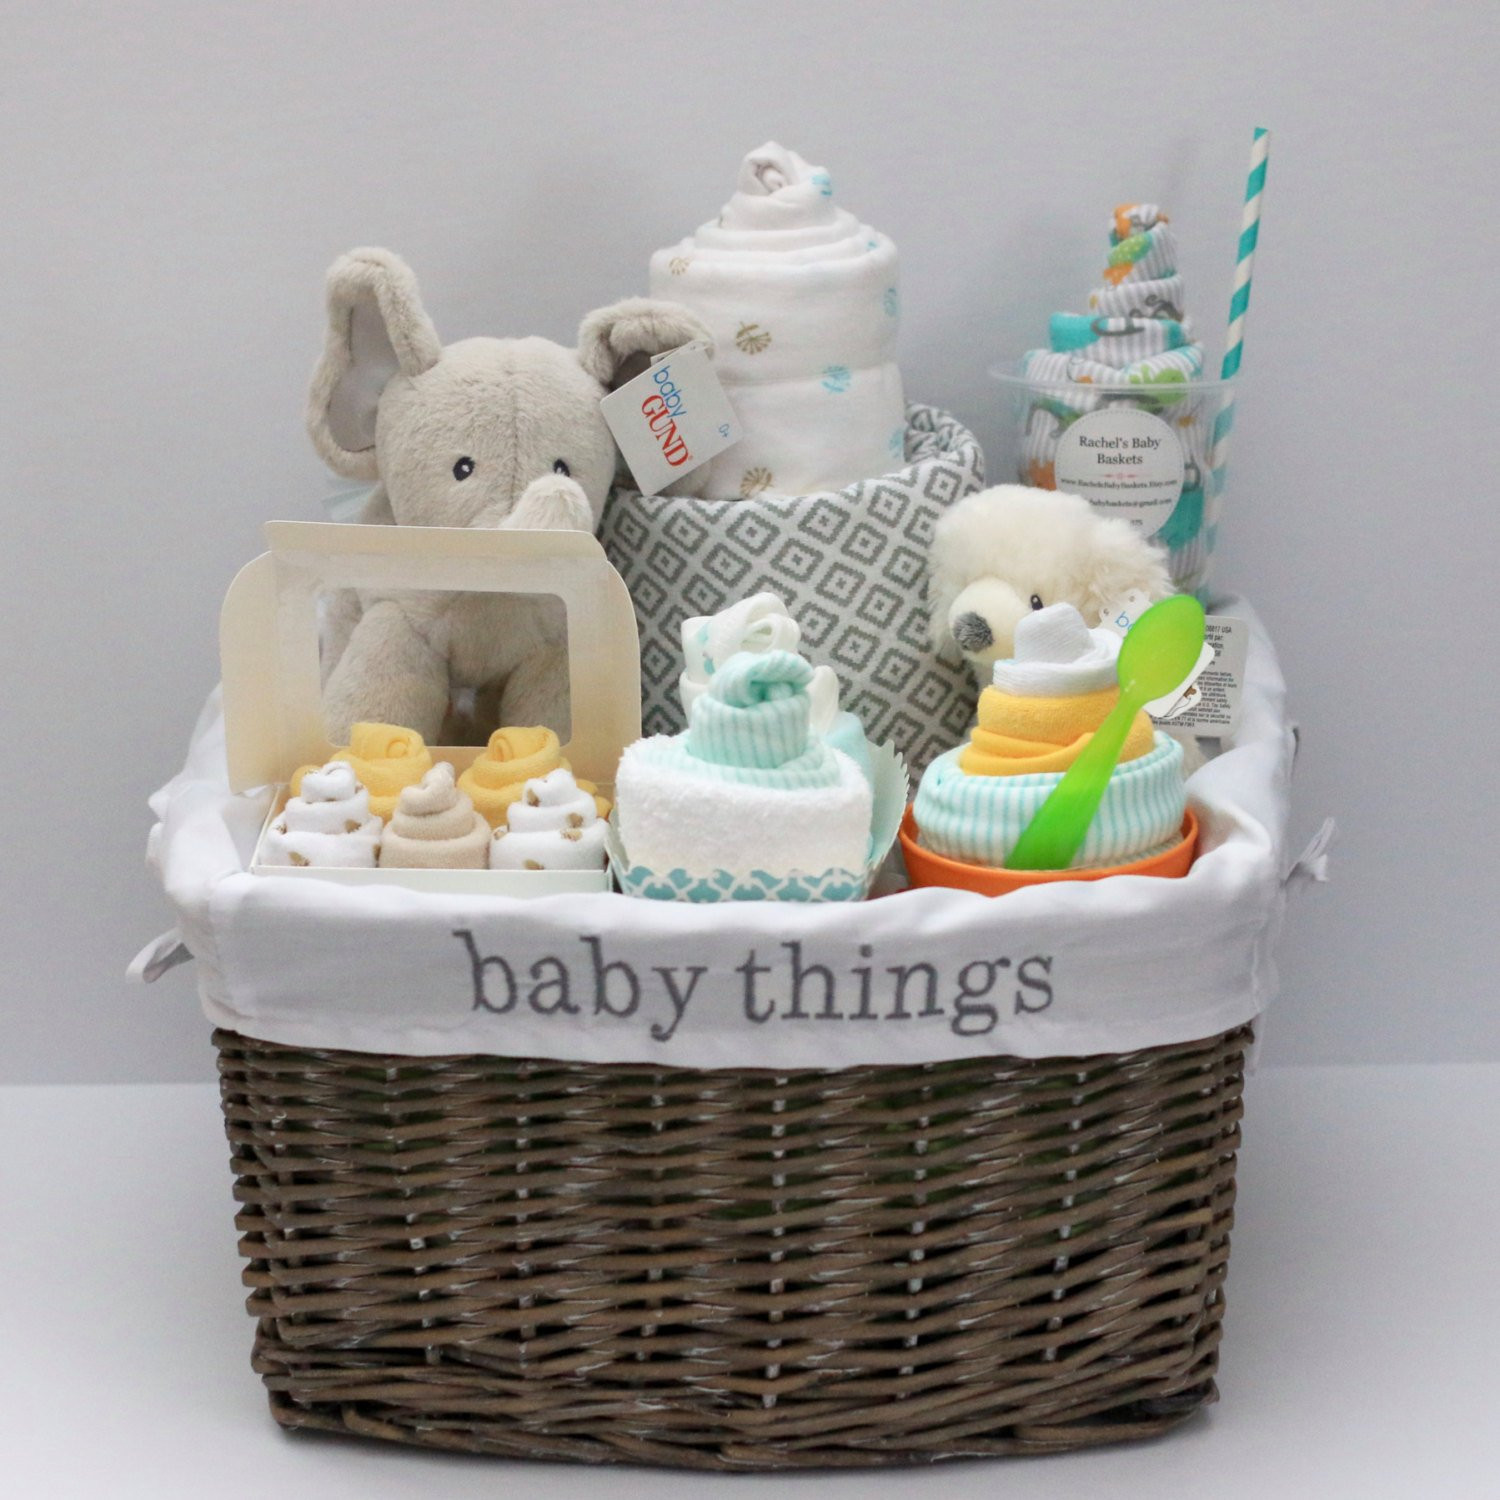 Best ideas about Gender Neutral Baby Gift Ideas . Save or Pin Gender Neutral Baby Gift Basket Baby Shower Gift Unique Baby Now.